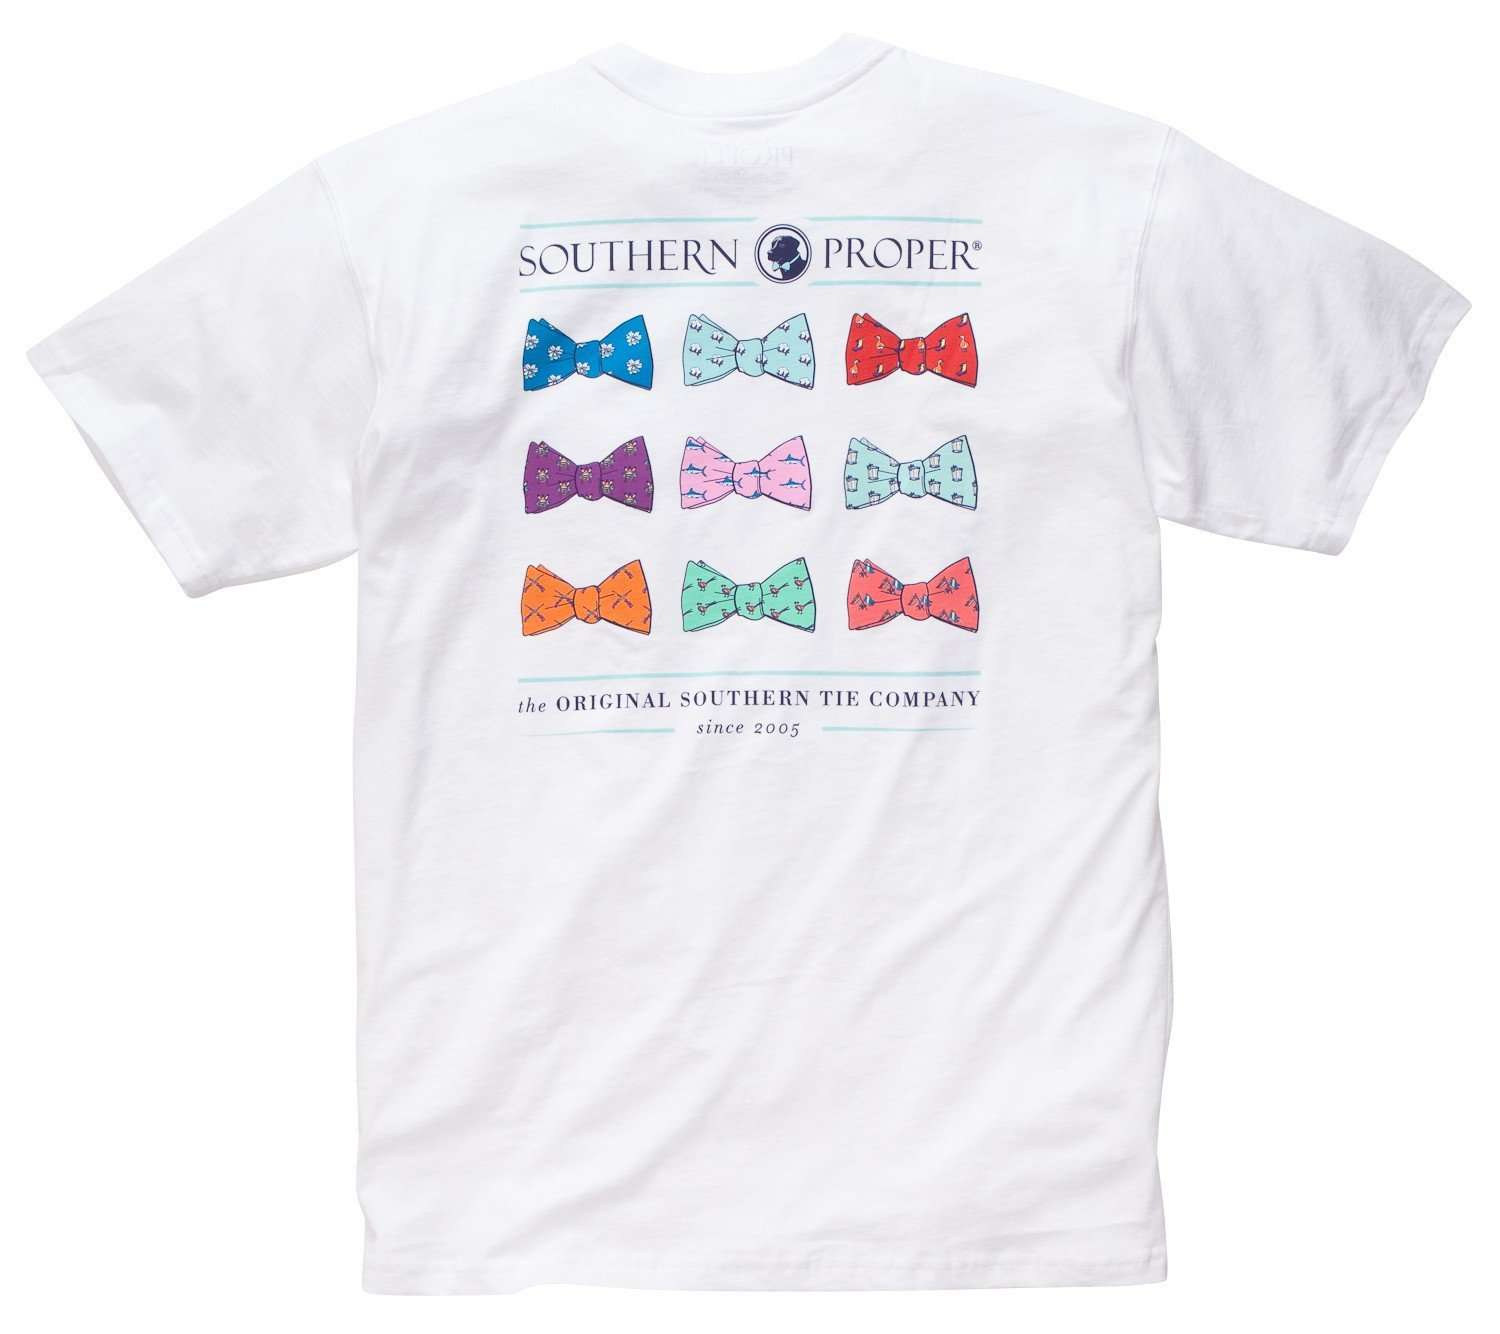 Men's Tee Shirts - Southern Proper Bow Tie Tee In White By Southern Proper